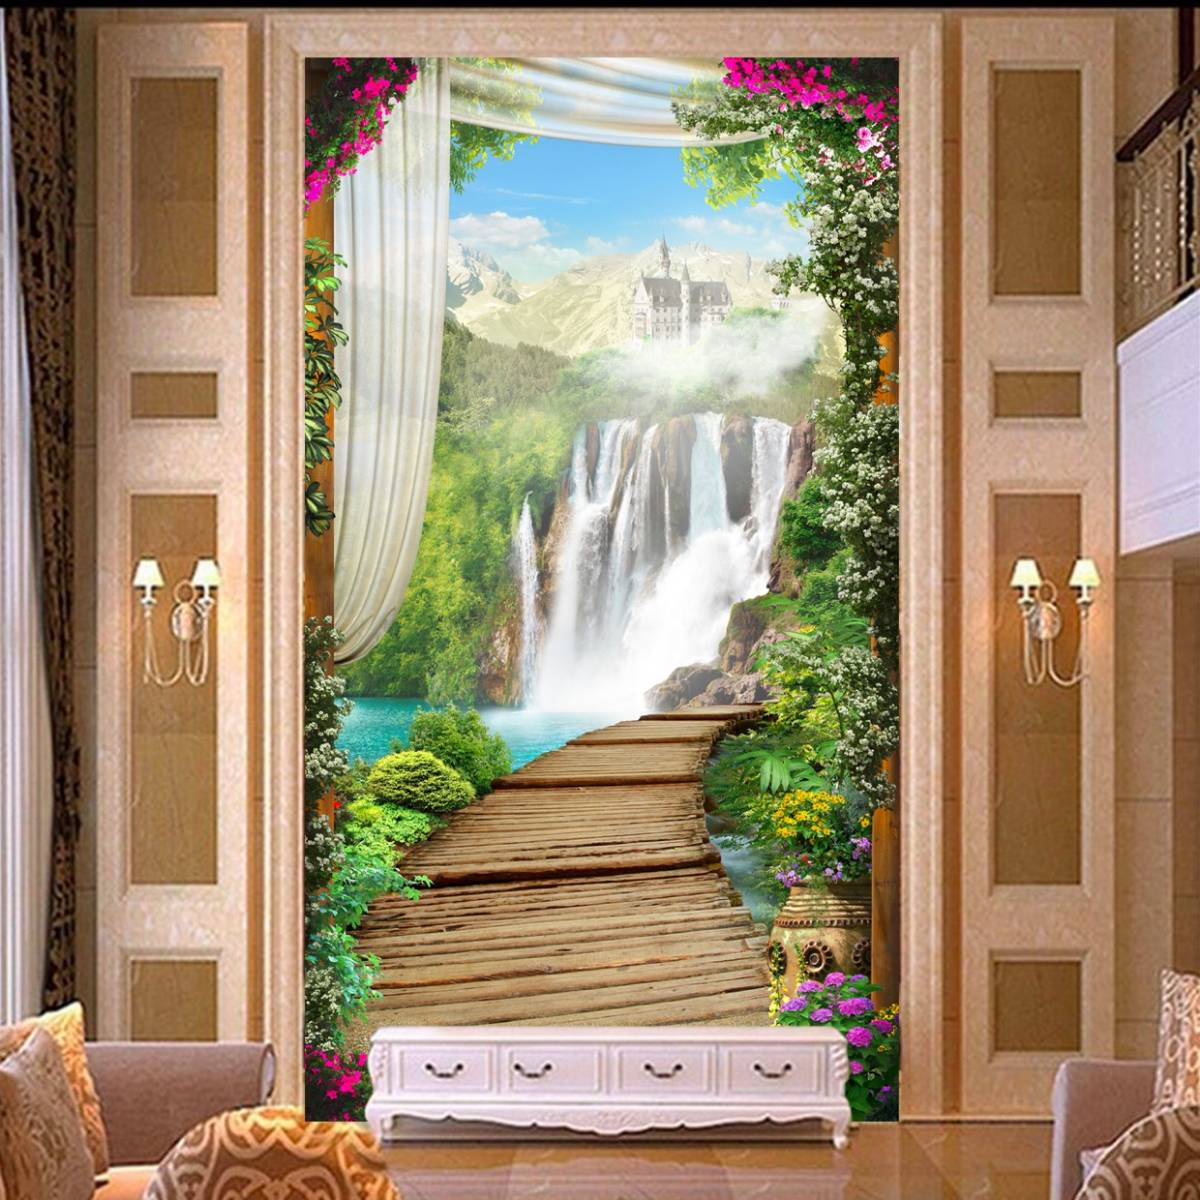 Wallpaper Custom Wallpaper 3d Wallpaper Dinding Air Terjun Waterfall 2